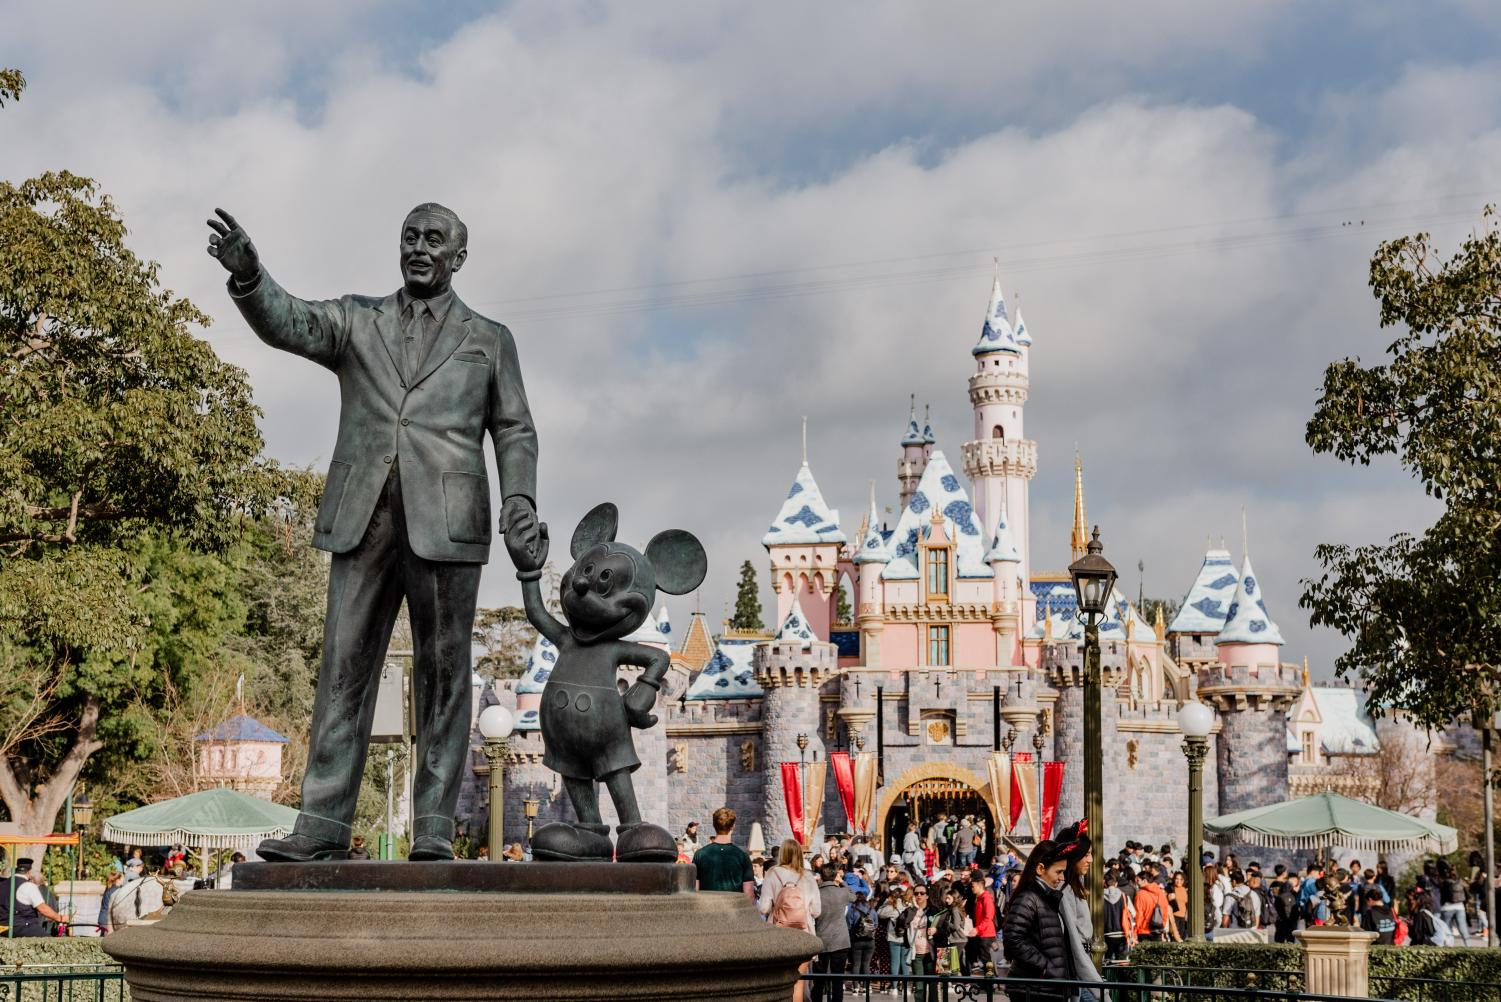 On Jan. 11, 186 seniors went on their senior Disney trip to the happiest place in the world, and were given the opportunity to relax and get a break from school and work.